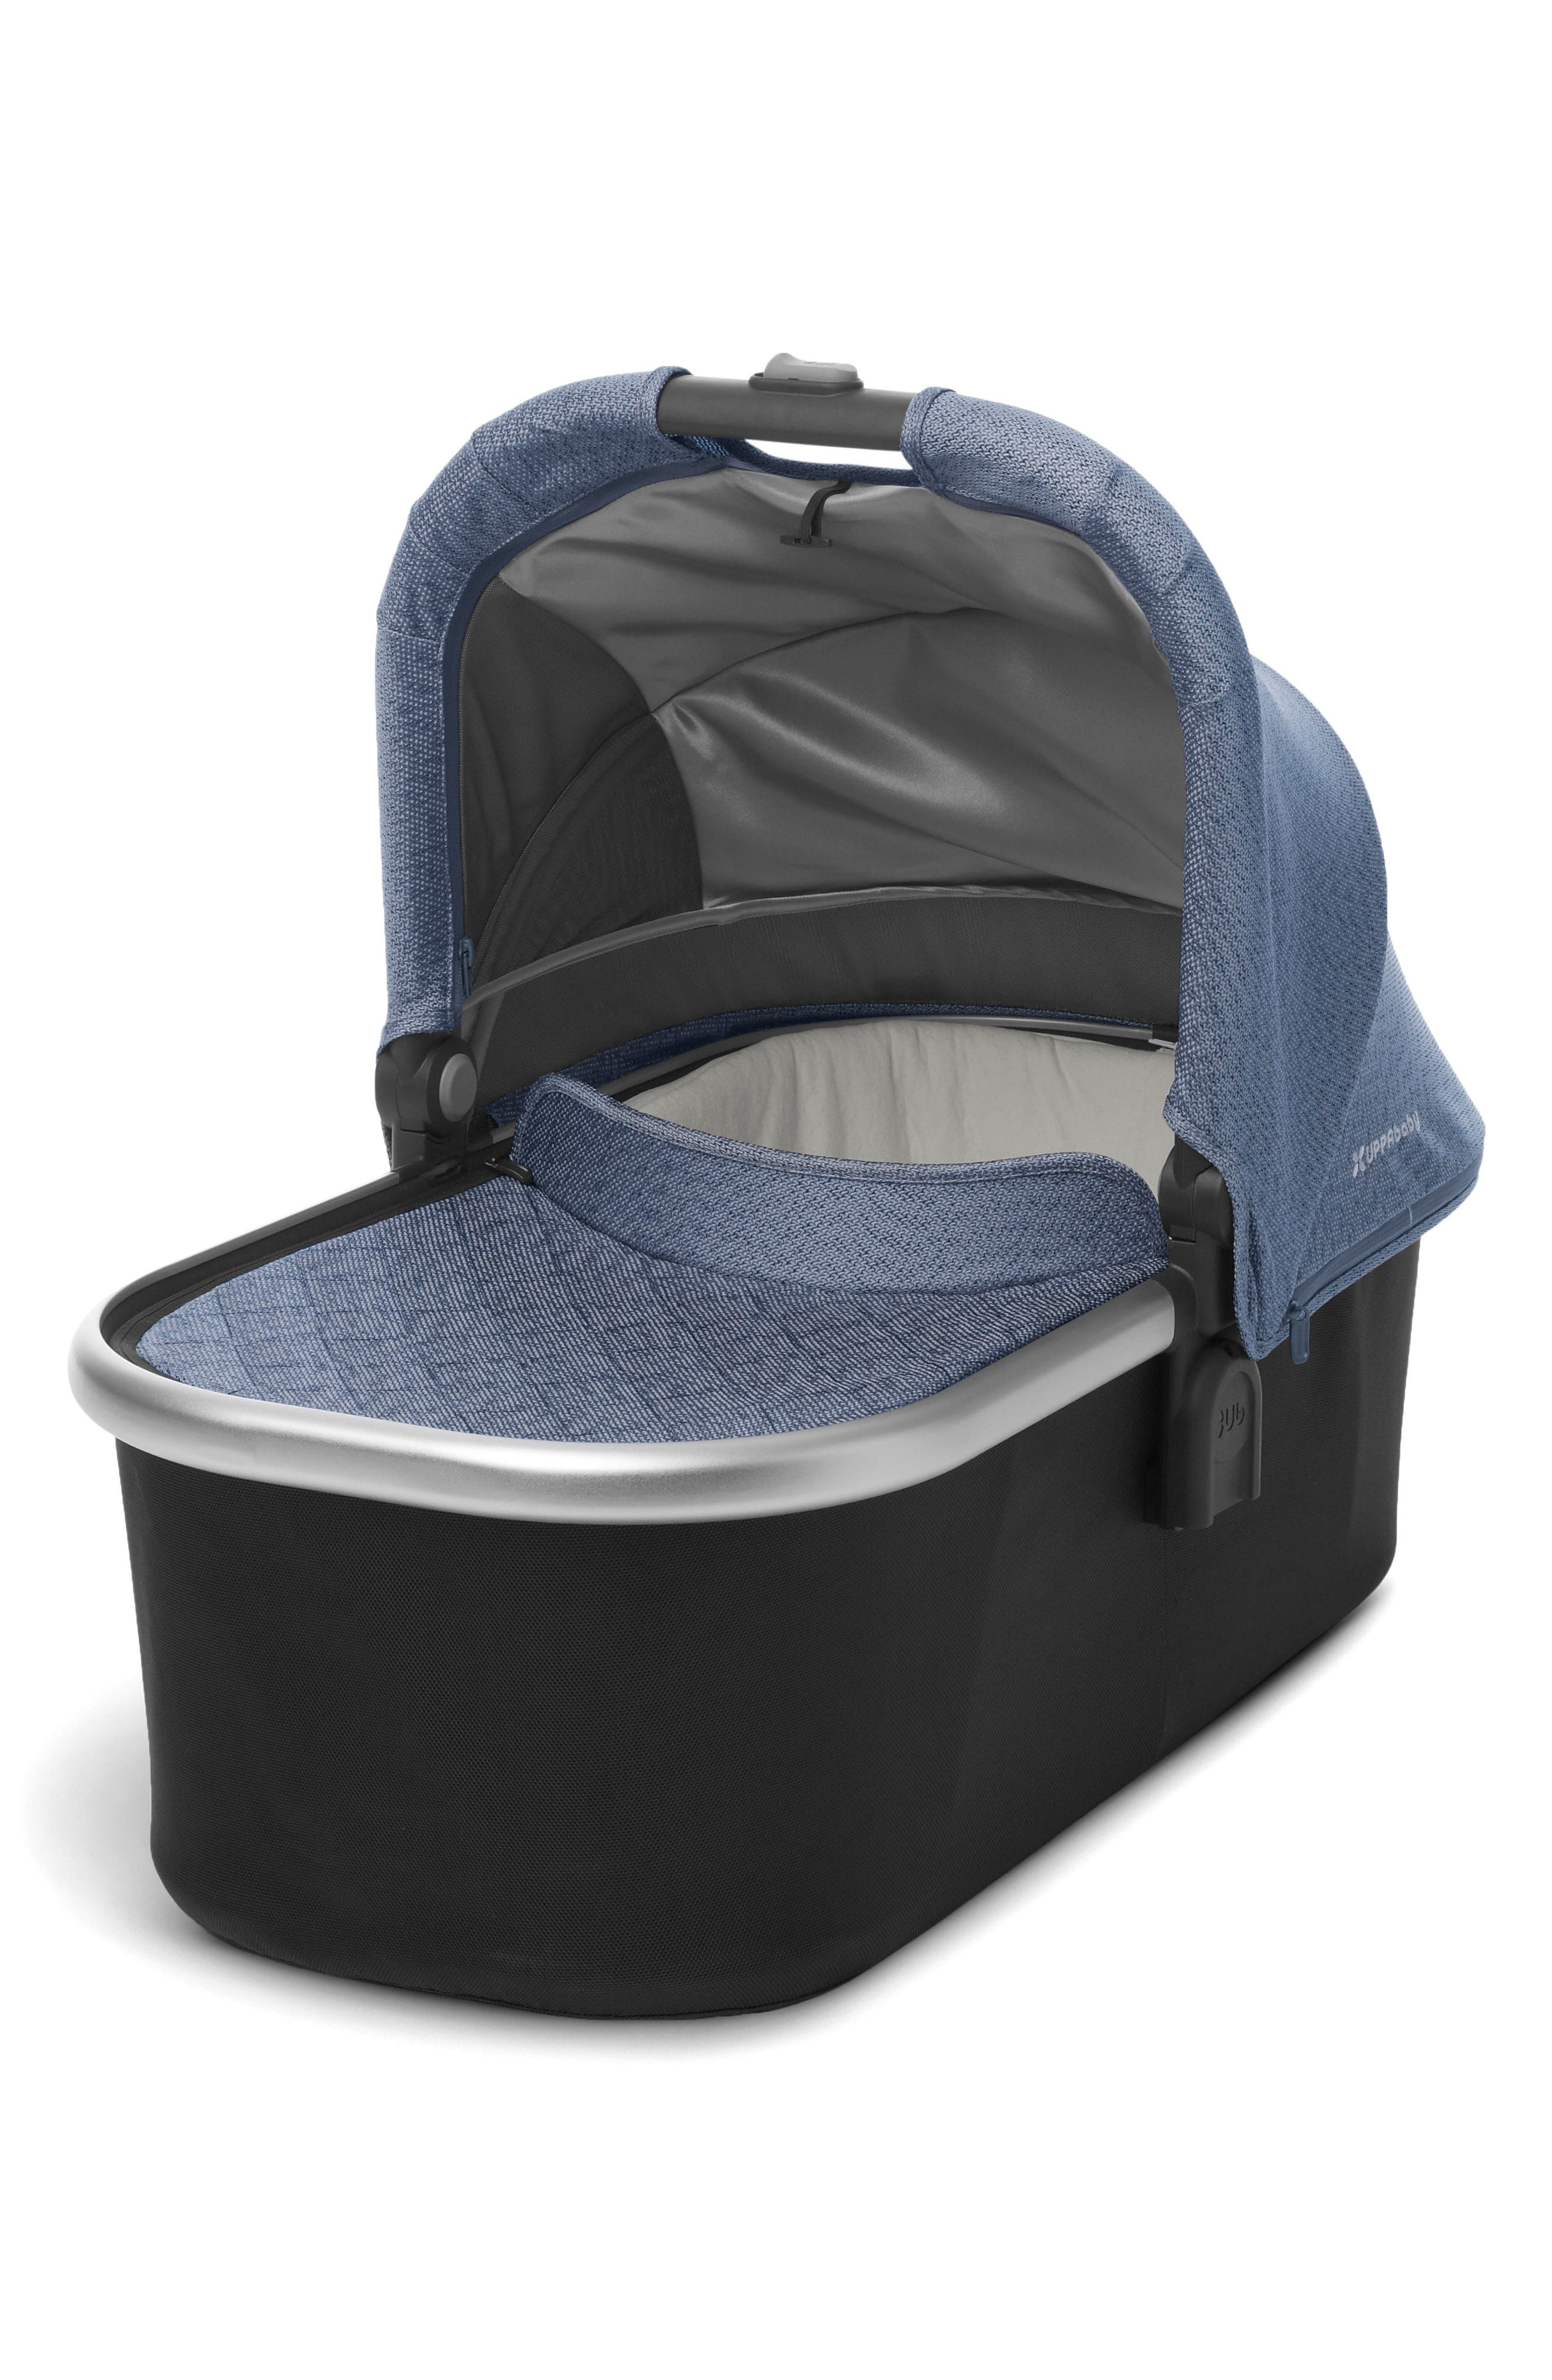 Henry Bassinet for CRUZ or VISTA Strollers,                         Main,                         color, 430